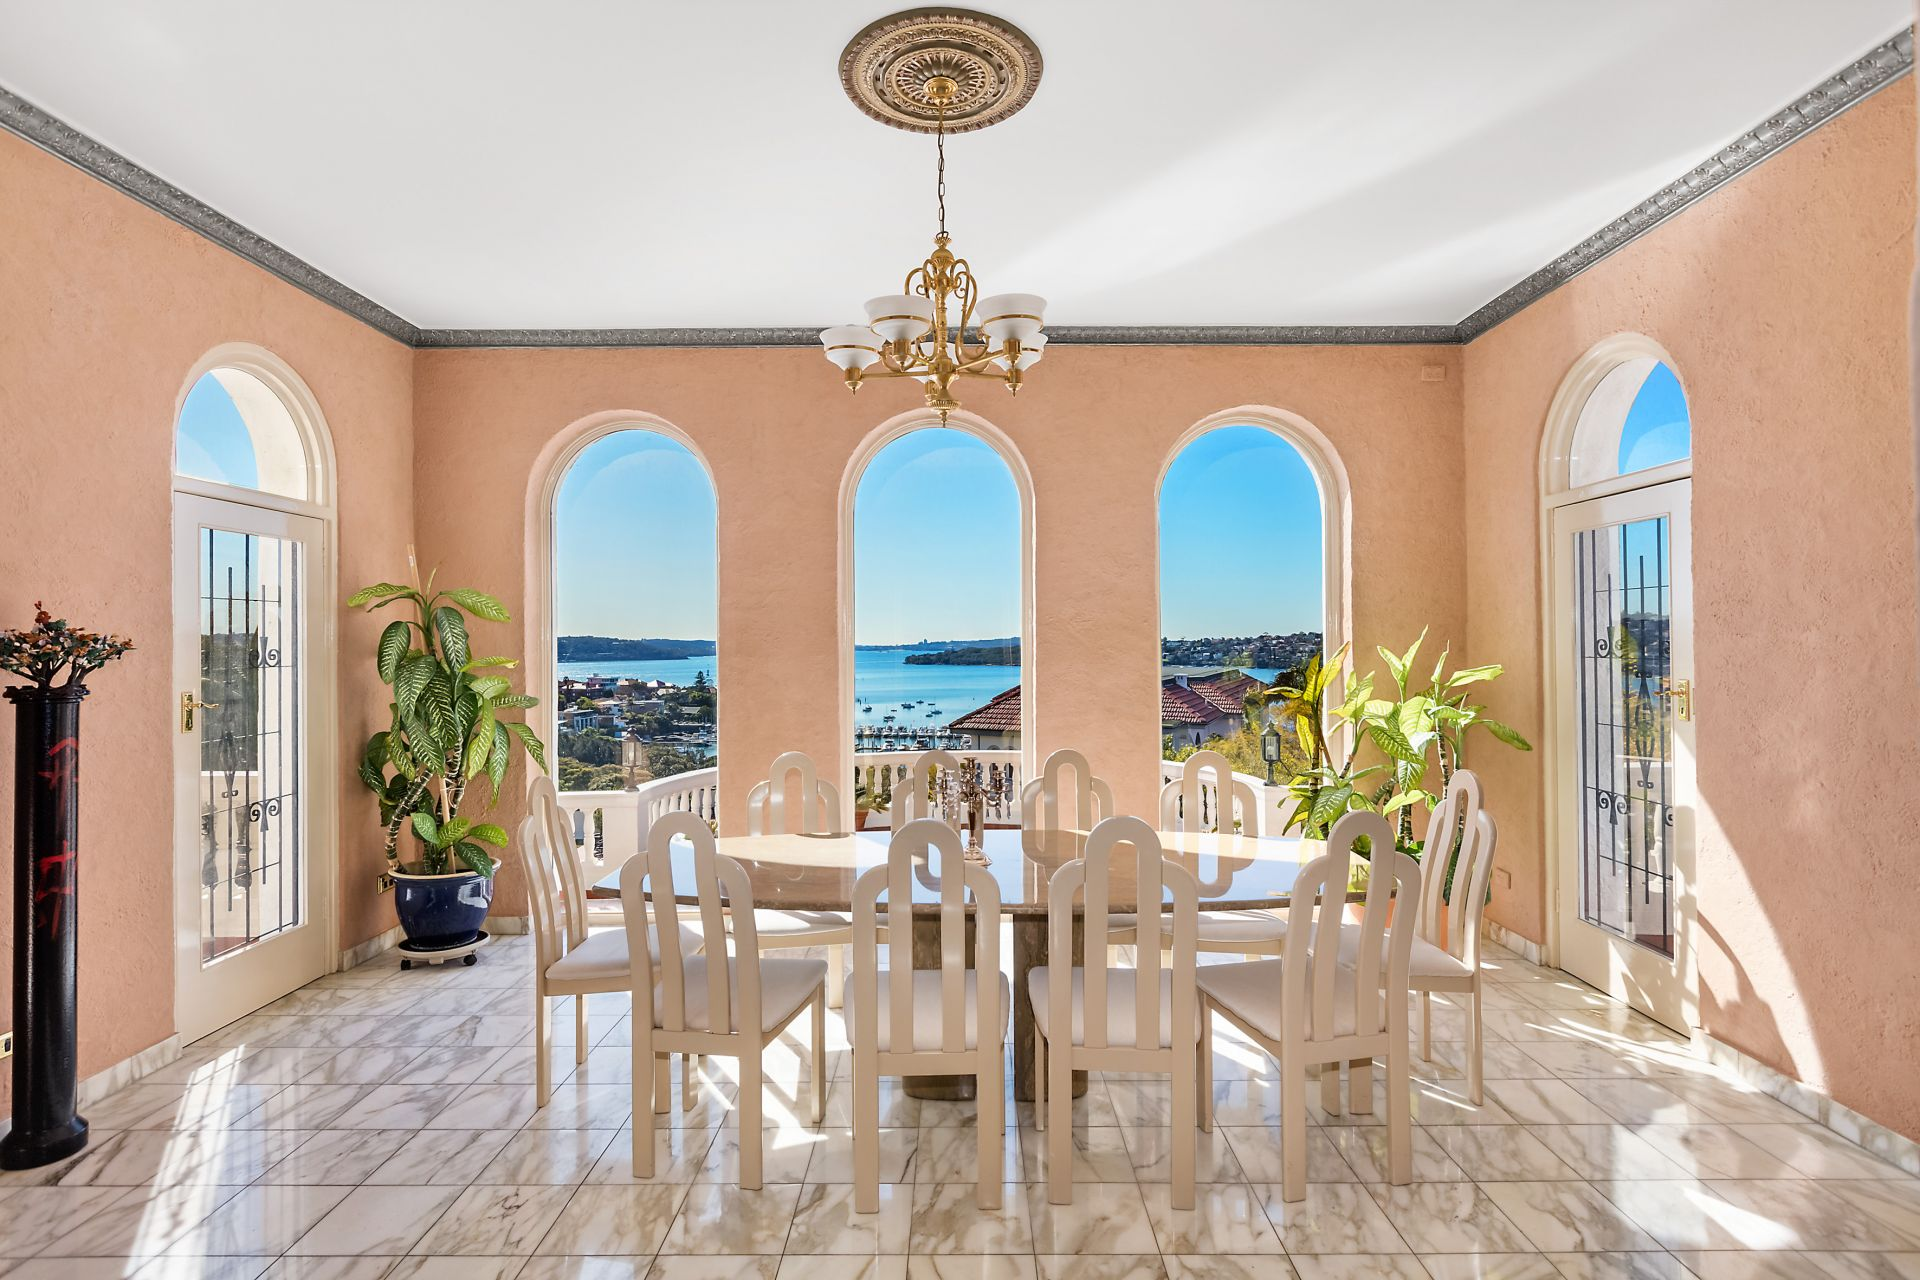 Additional photo for property listing at 'Alcooringa' - The Glamour Of Old Hollywood With Panoramic Harbour Views And Every Luxury  Bellevue Hill, New South Wales,2023 Australie